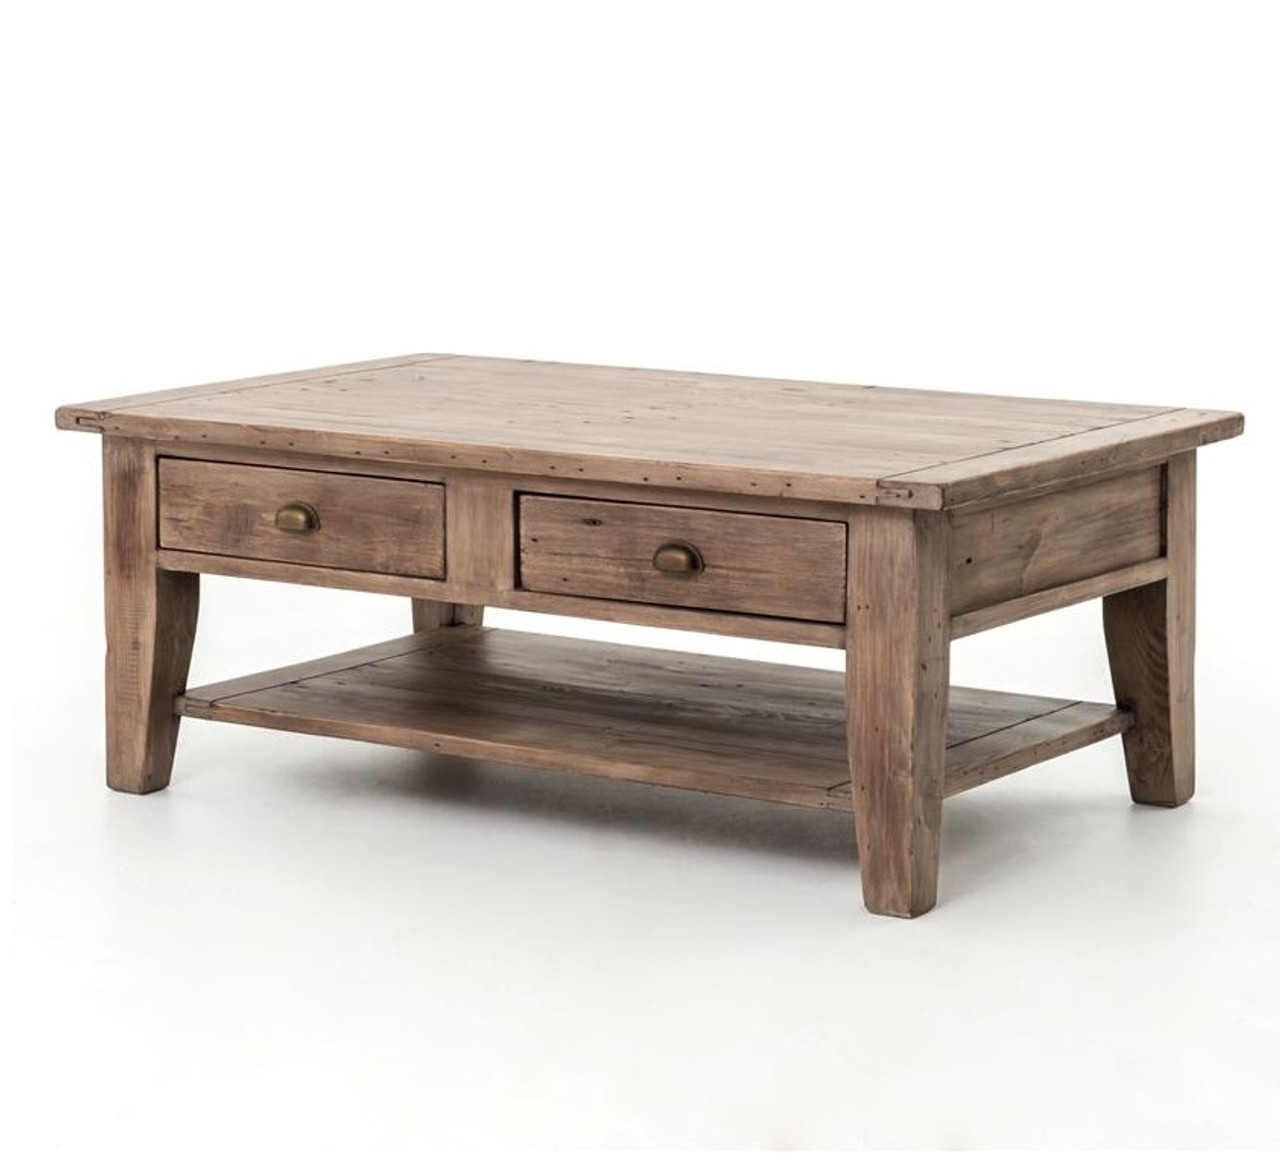 Coffee Table With Drawers: Coastal Solid Wood Rustic Coffee Table With Drawers